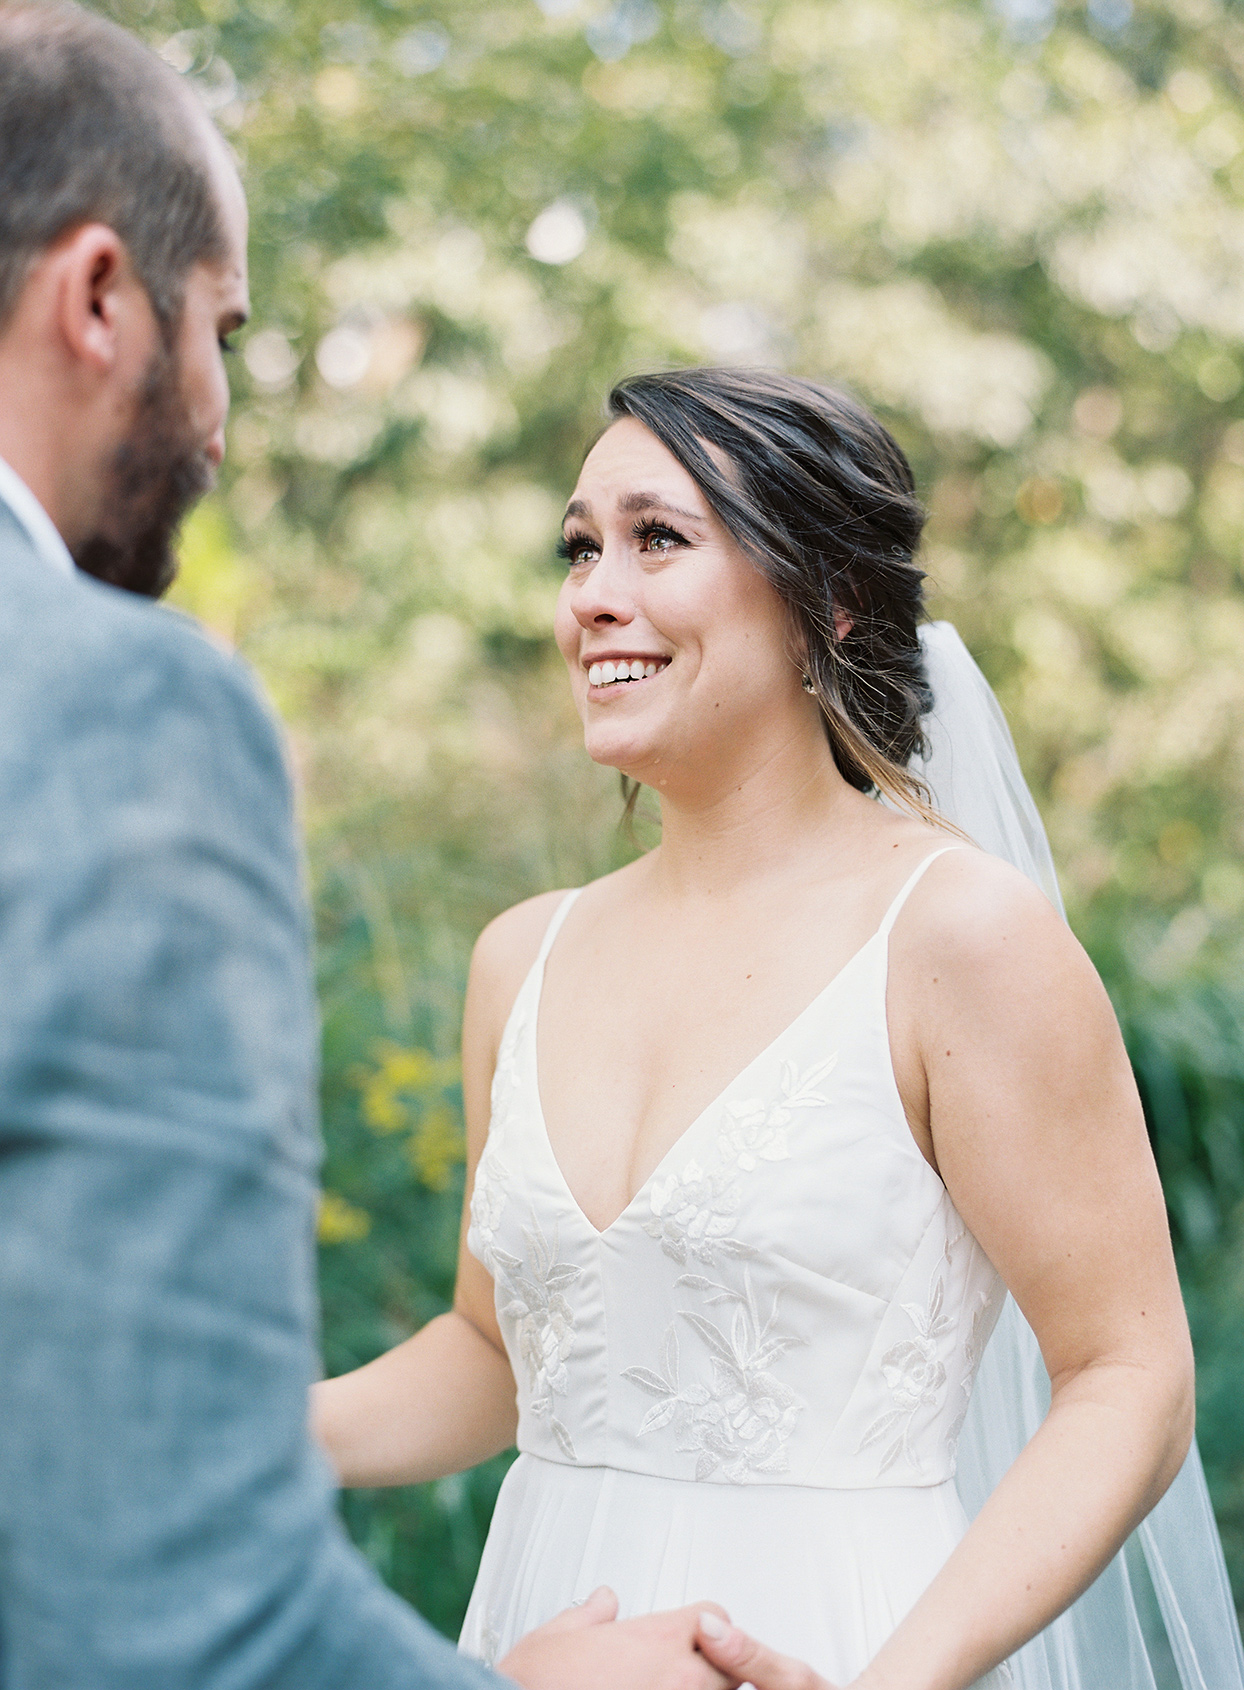 bride smiling at groom during first look outside